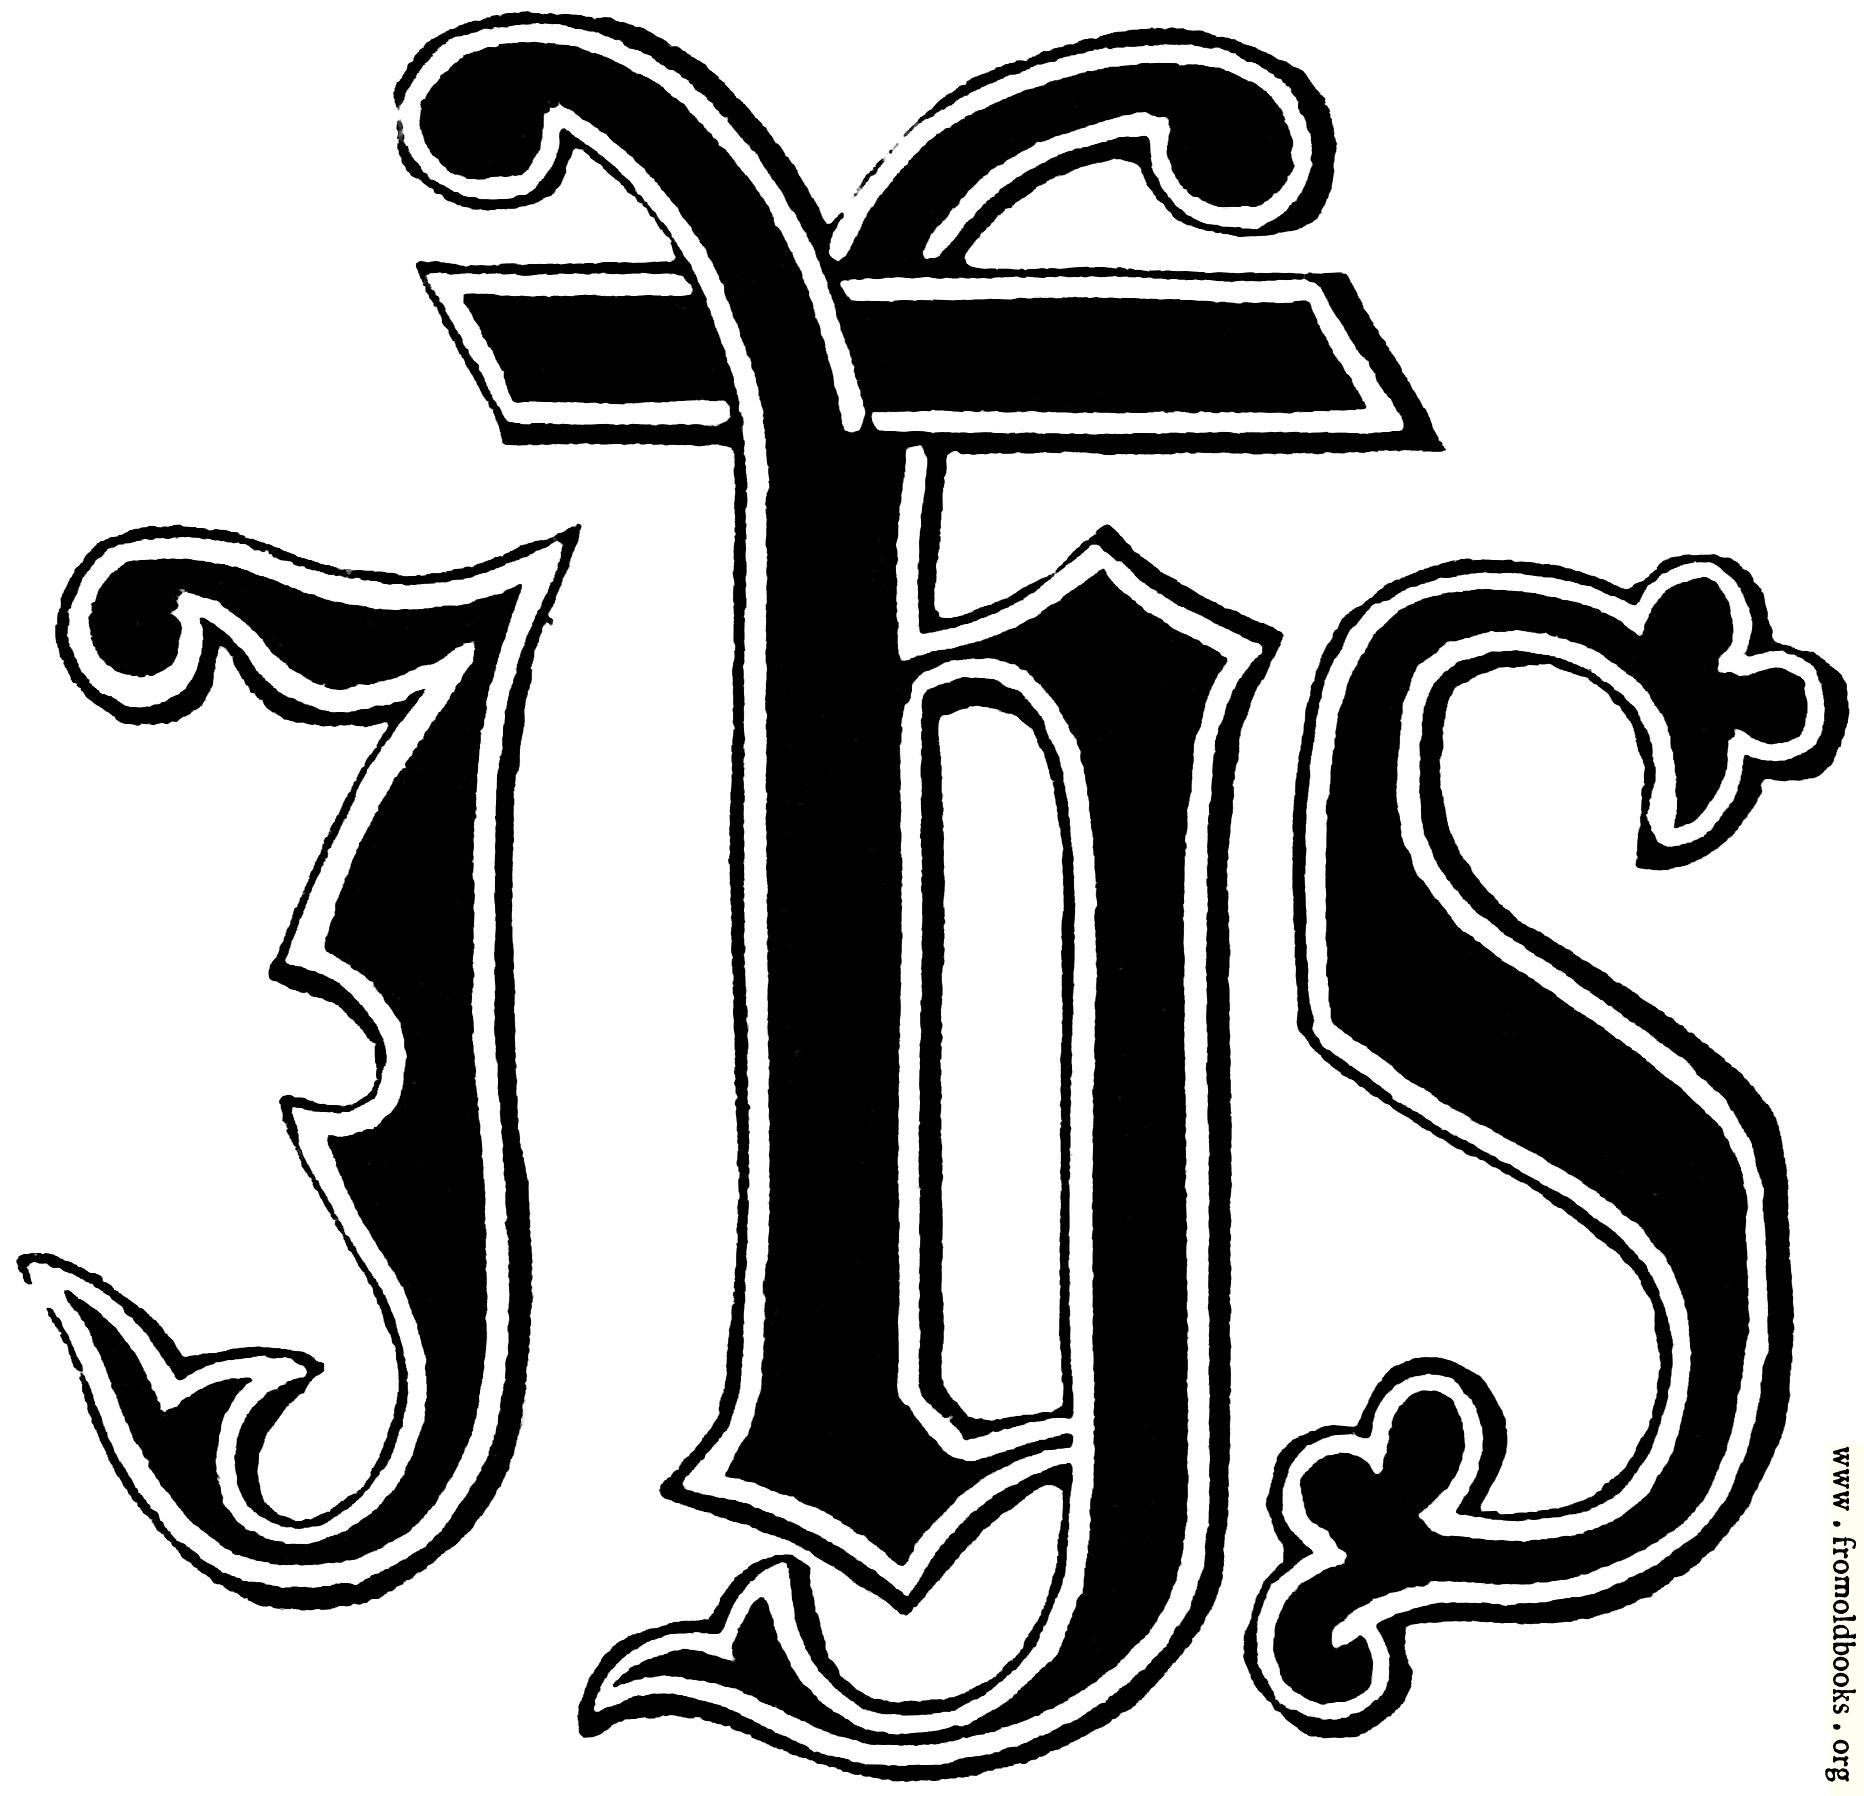 43 Meaning Of Religious Symbol Ihs Meaning Religious Of Ihs Symbol